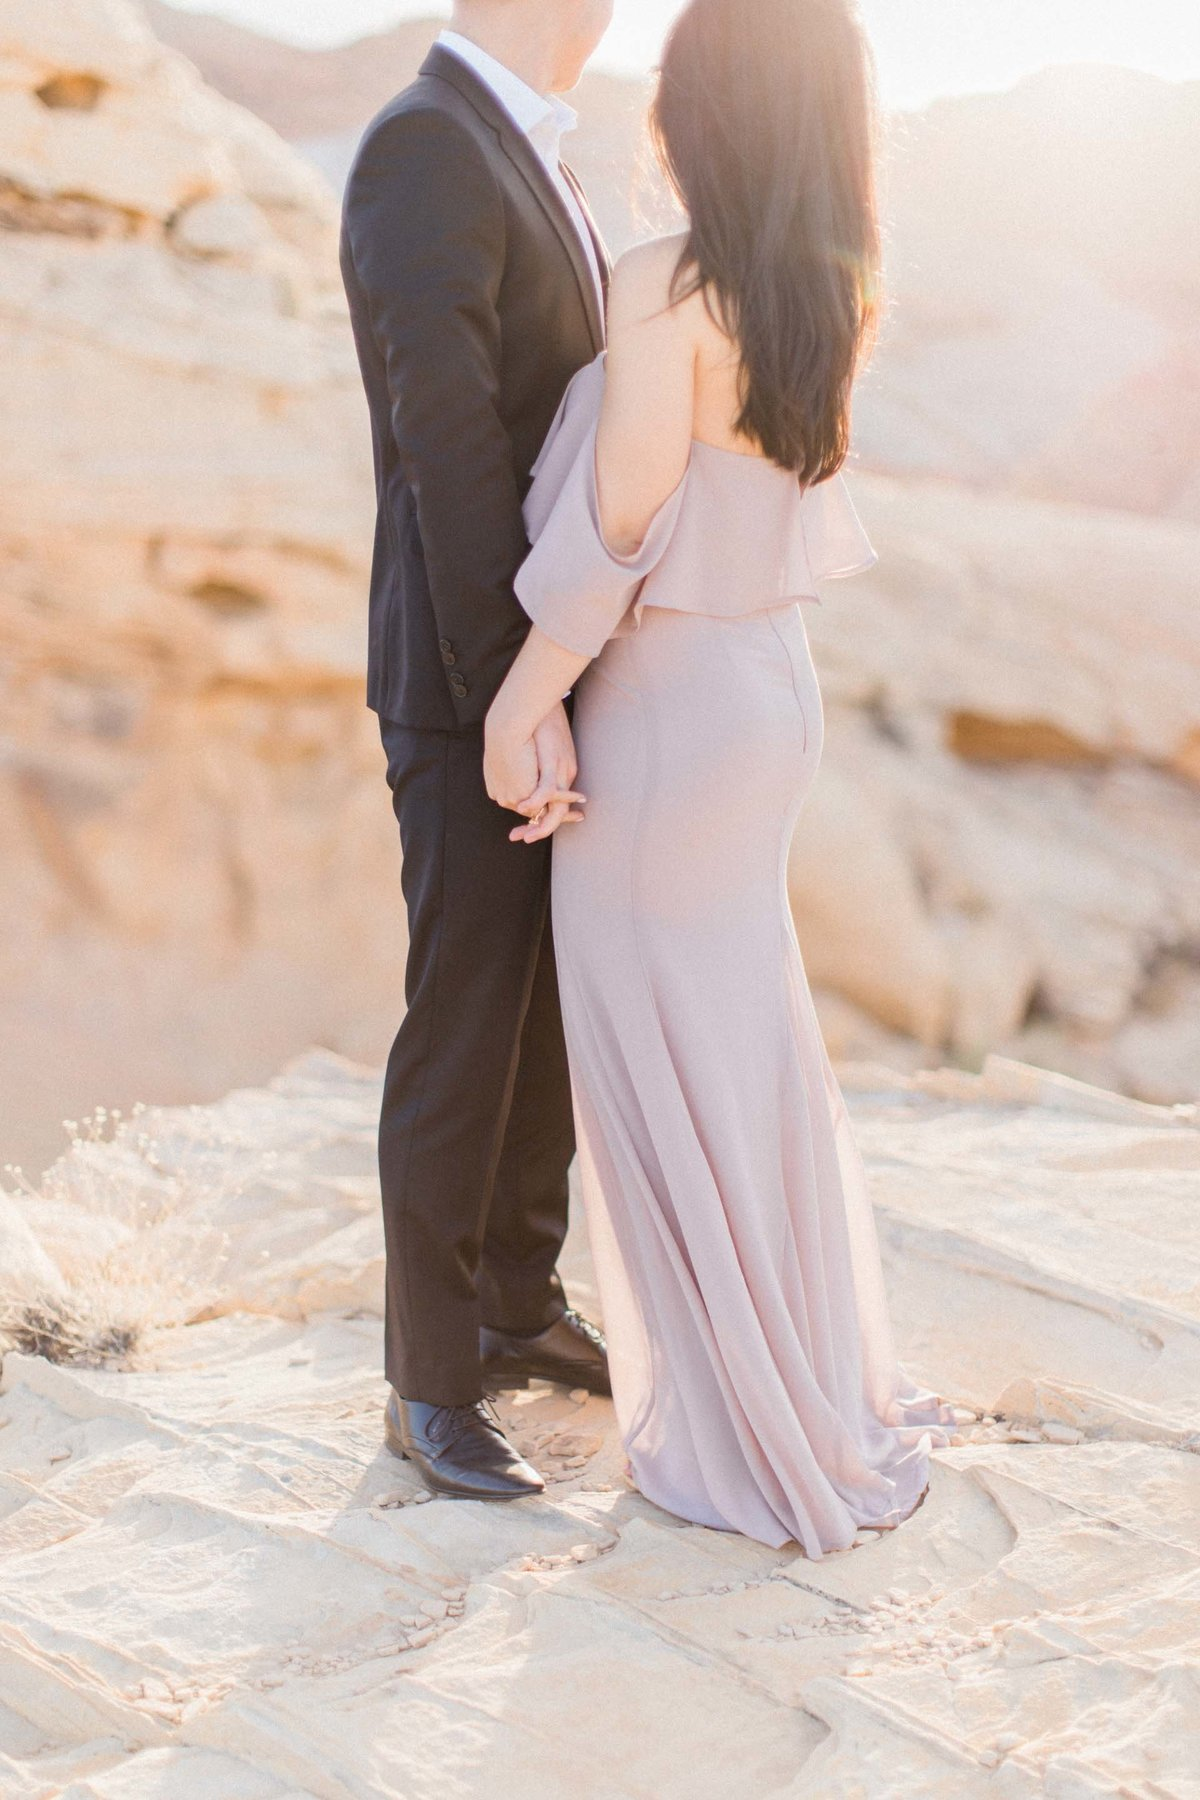 Valley-of-Fire-Las-Vegas-Engagement-Photographer-8-DT